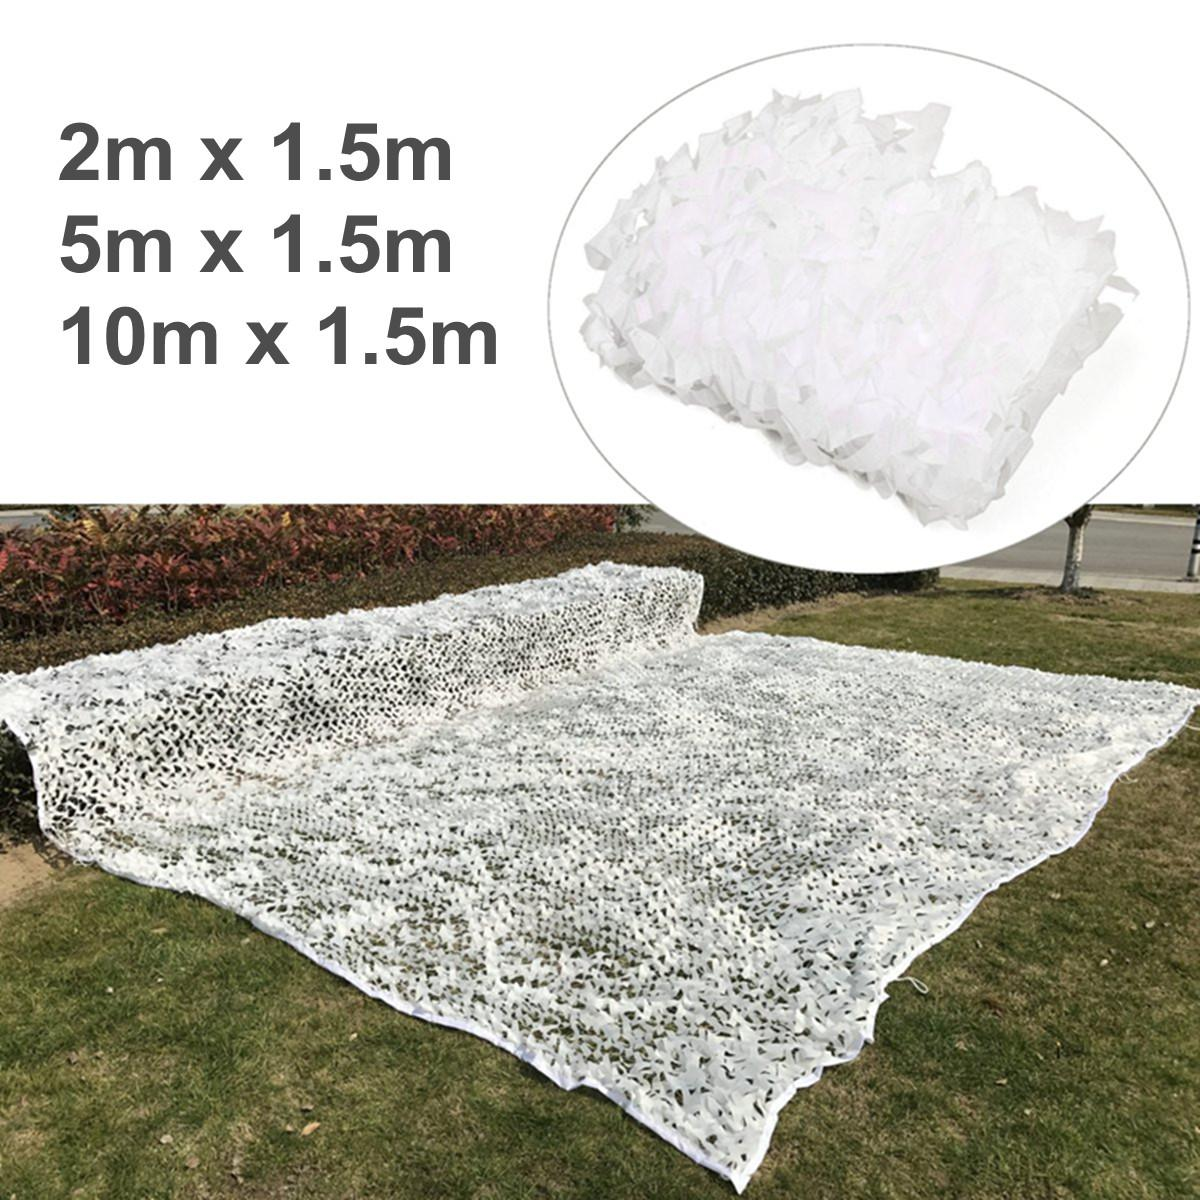 Polyester White Camouflage Net Outdoor Garden Sunshade Cloth Canopy Camping Party Decoration Photography Camo Tent Cover Shelter